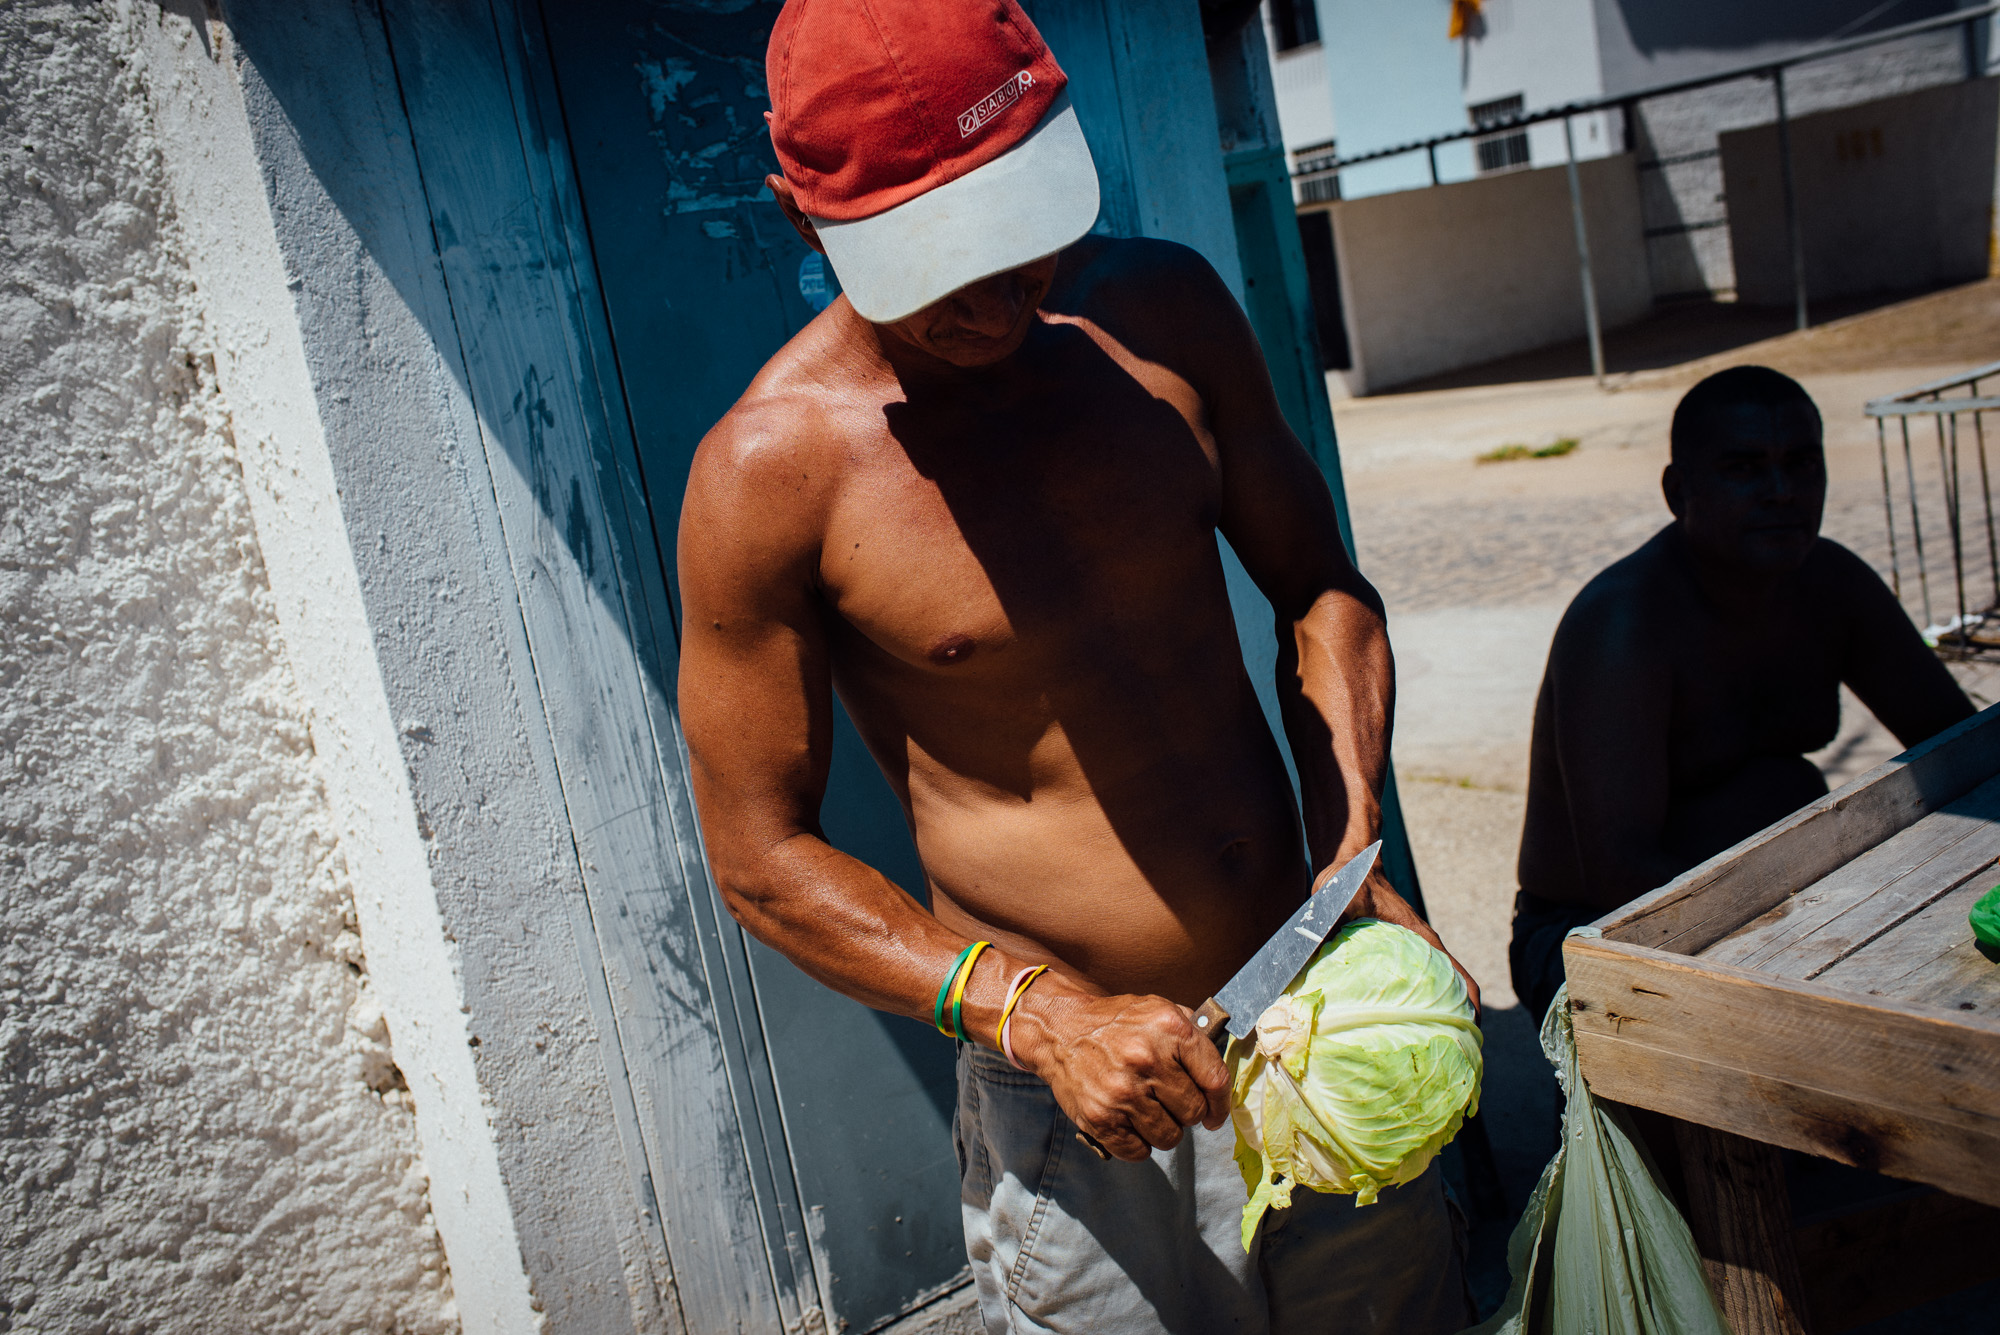 Jose Carlos, 38, cuts a head of lettuce to sell in front on his house. Some residents of the Irma Dulce housing project in Joao Pessoa, far removed from the city center, have opened up shops in front of their houses.